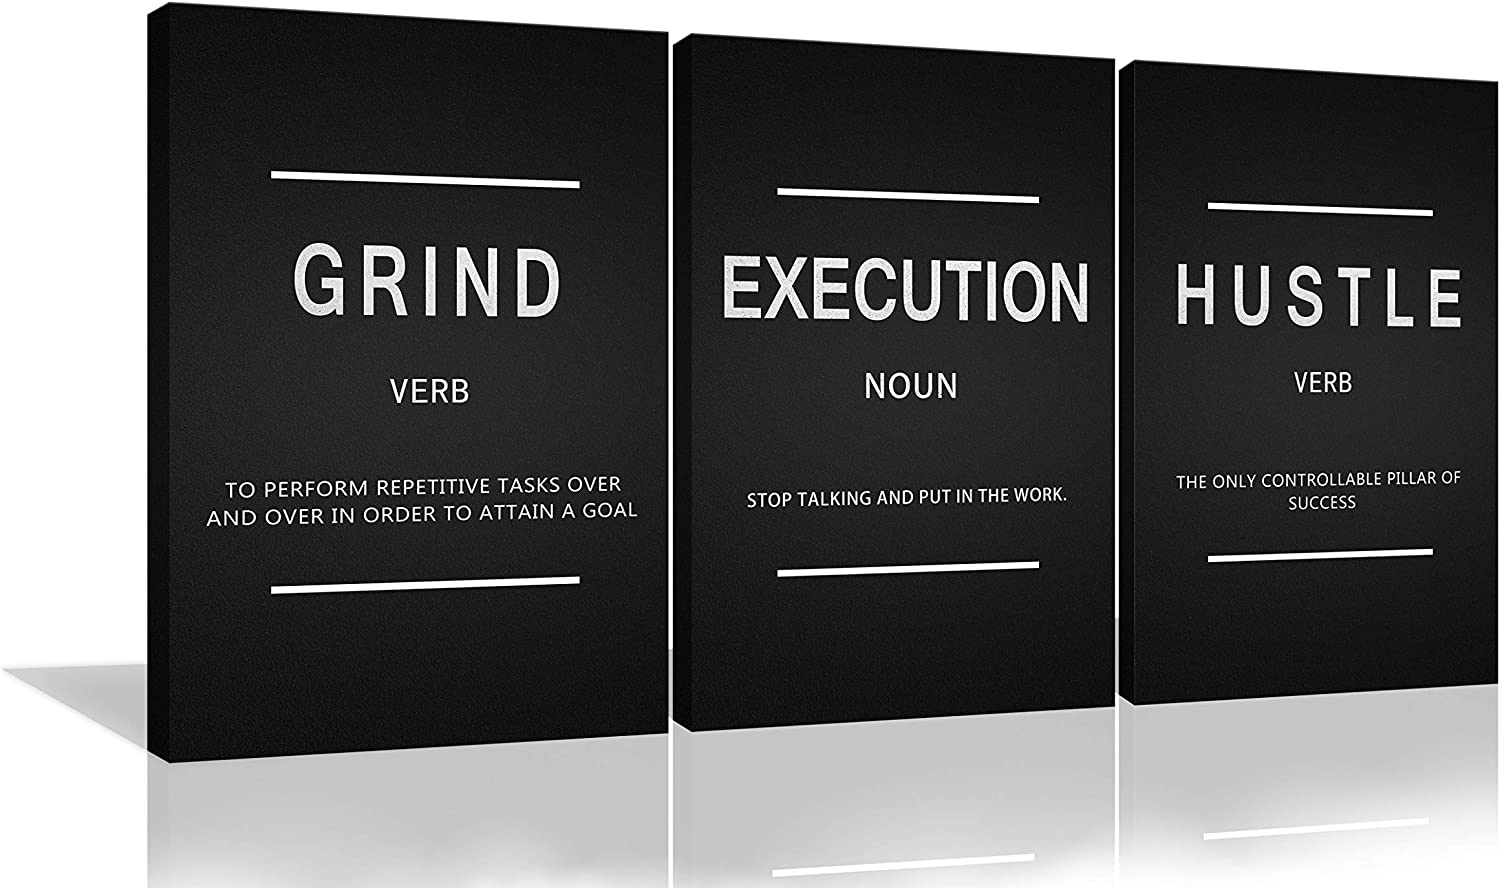 Amazon Com Large Success Quote Inspirational Wall Art Motivational Grind Hustle Execution Painting Entrepreneur Office Posters Prints Canvas Artwork 3 Panels Wall Decor For Office Framed Ready To Hang 24 X36 X3 Posters Prints